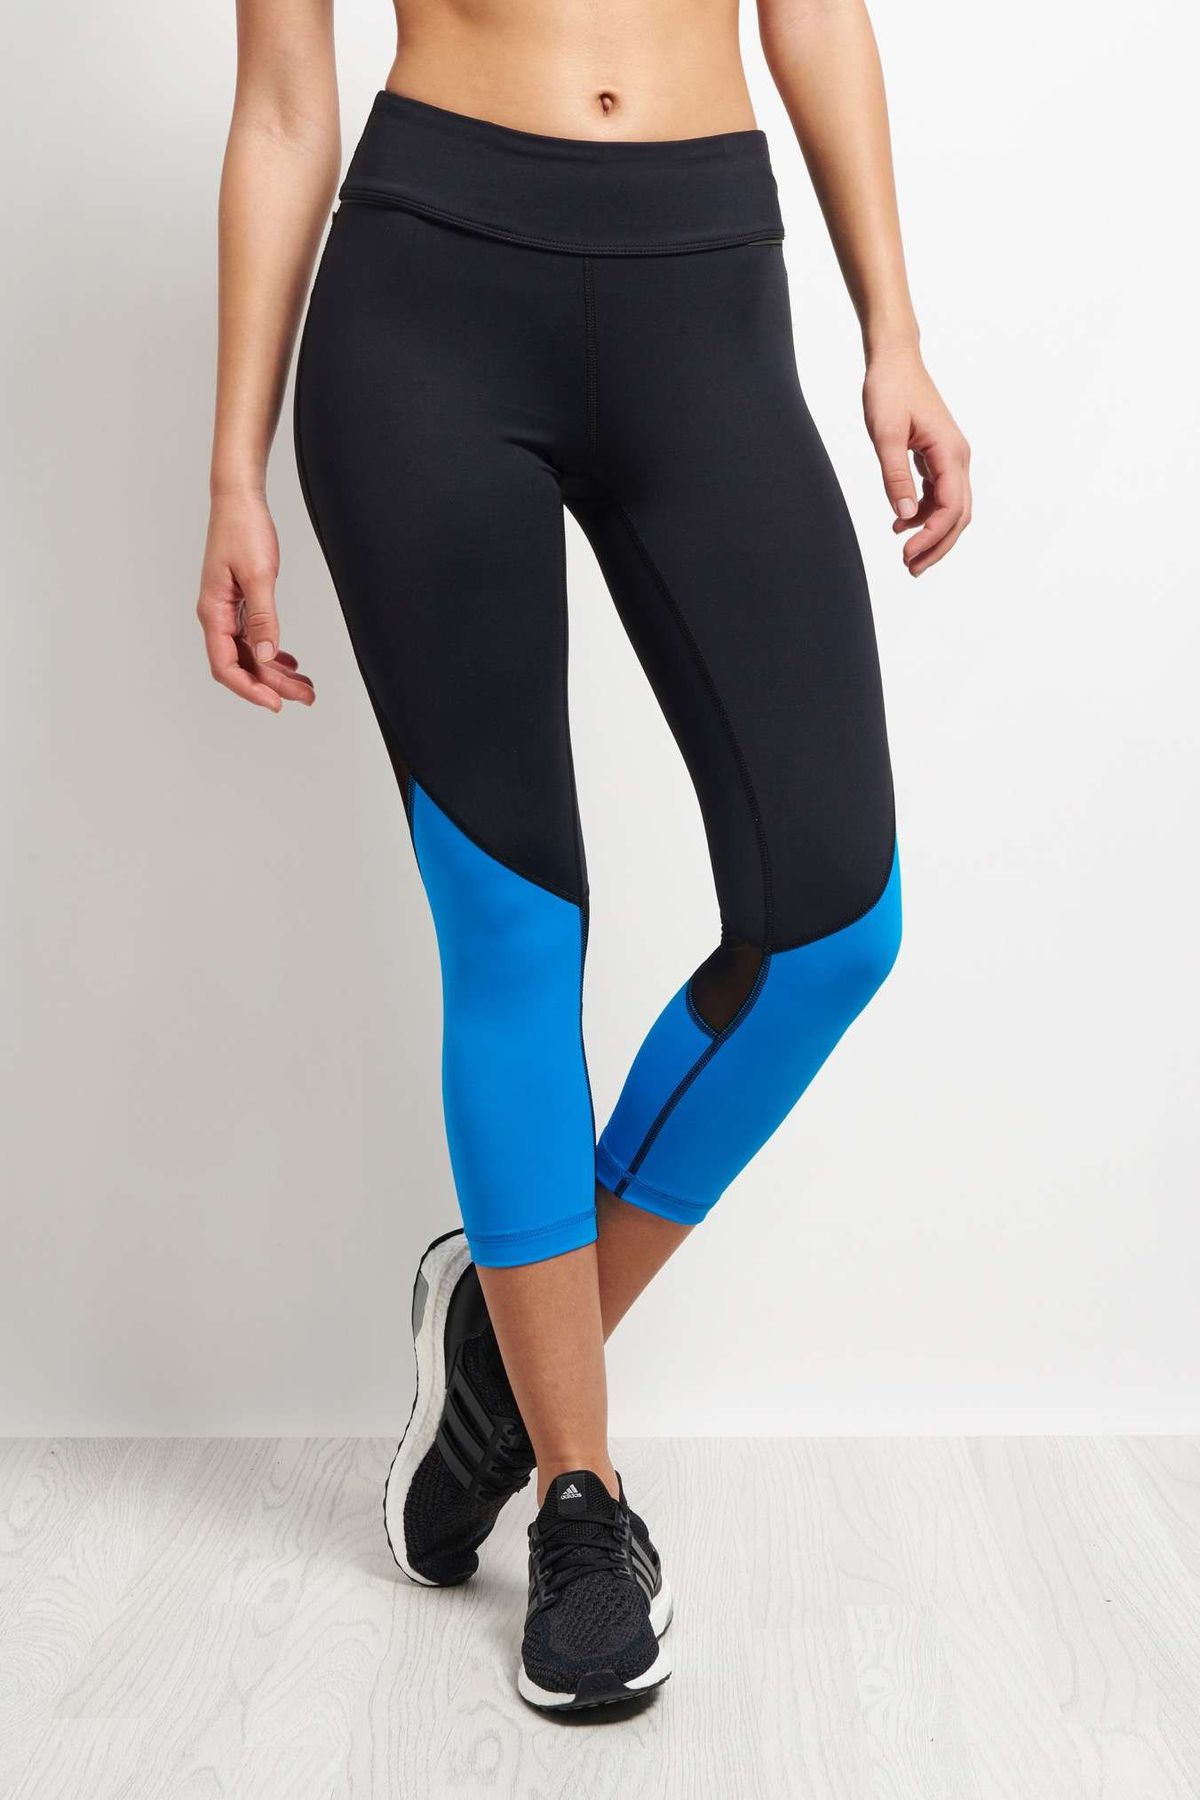 The Best Workout Leggings For Going Commando Racked